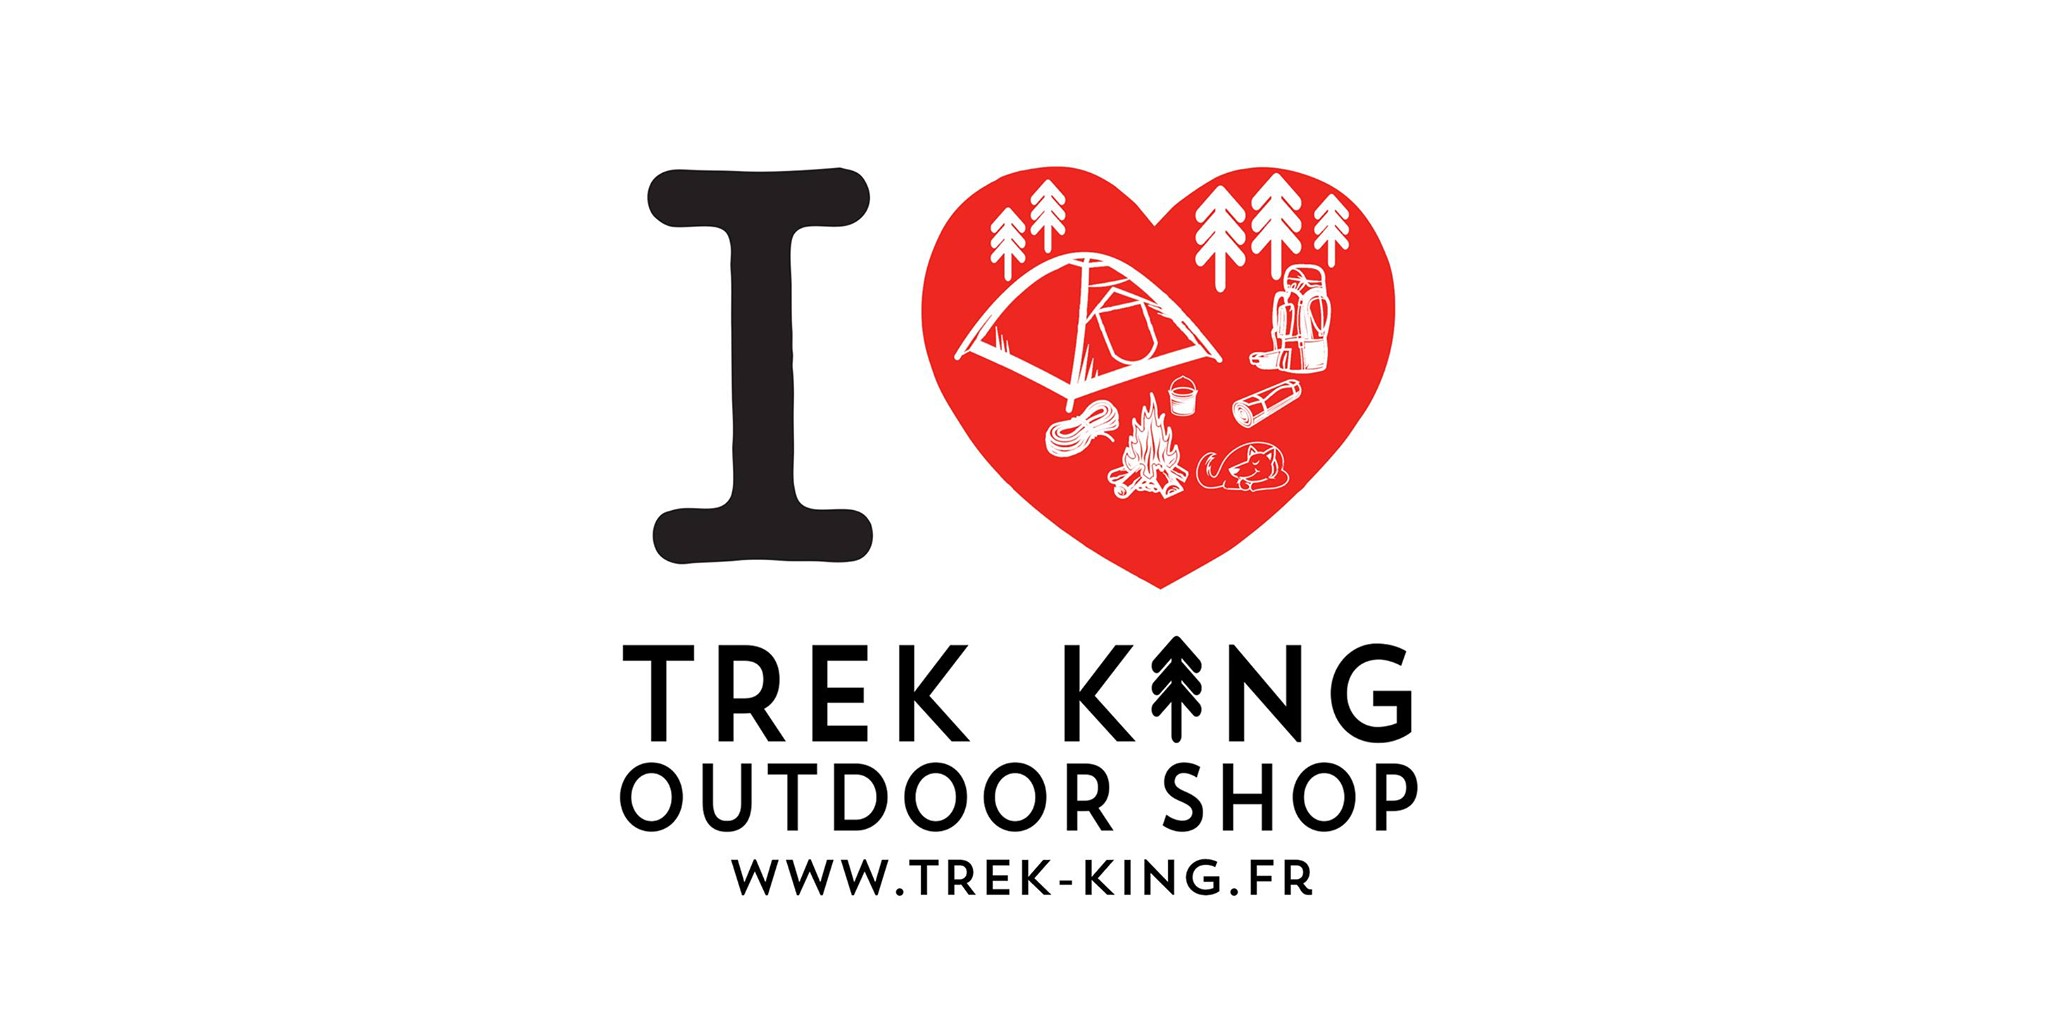 Trek King Outdoor Shop